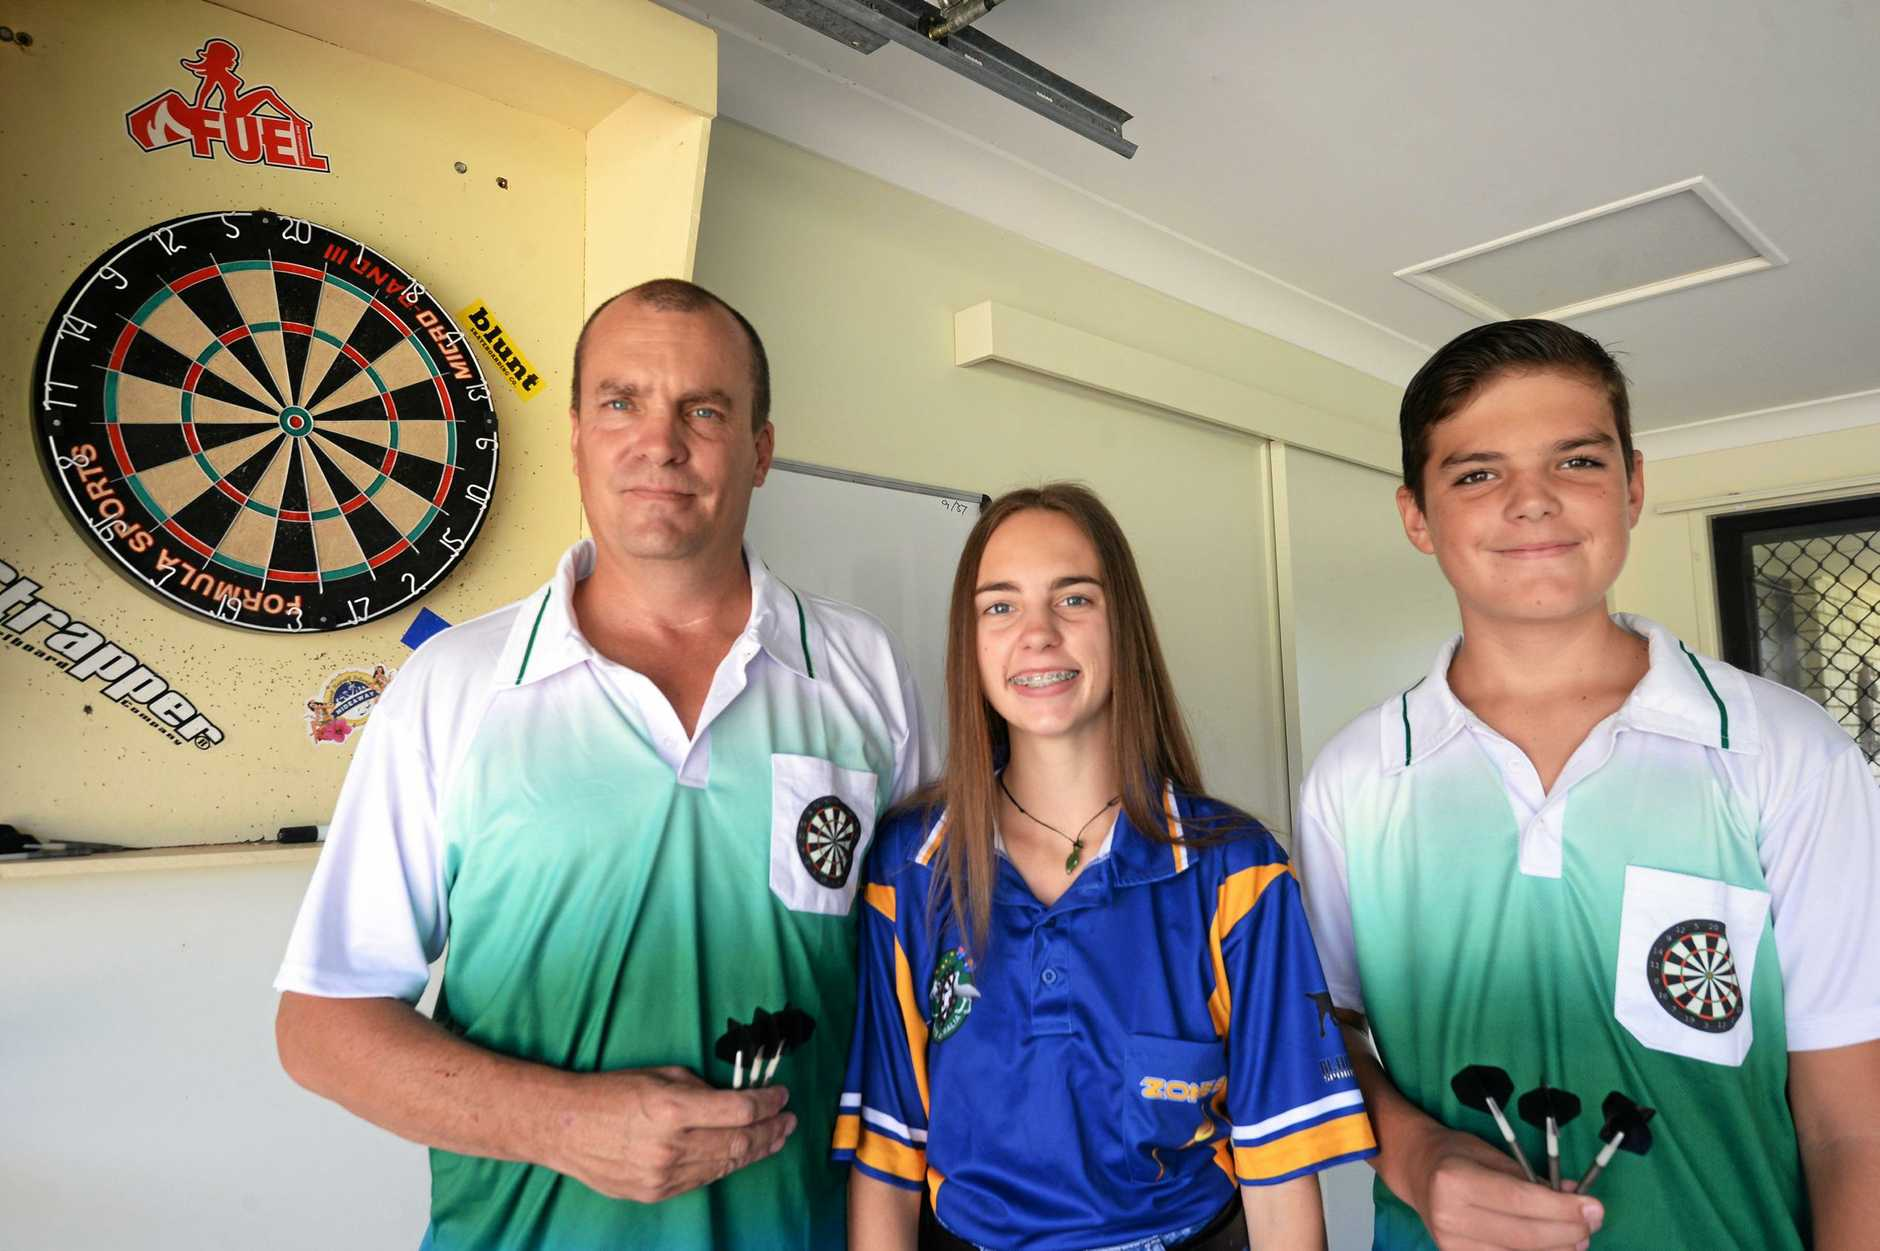 Dean Abbott introduced his two children  Taryn and Hayden  to darts and has seen a remarkable improvement in their maths grades.